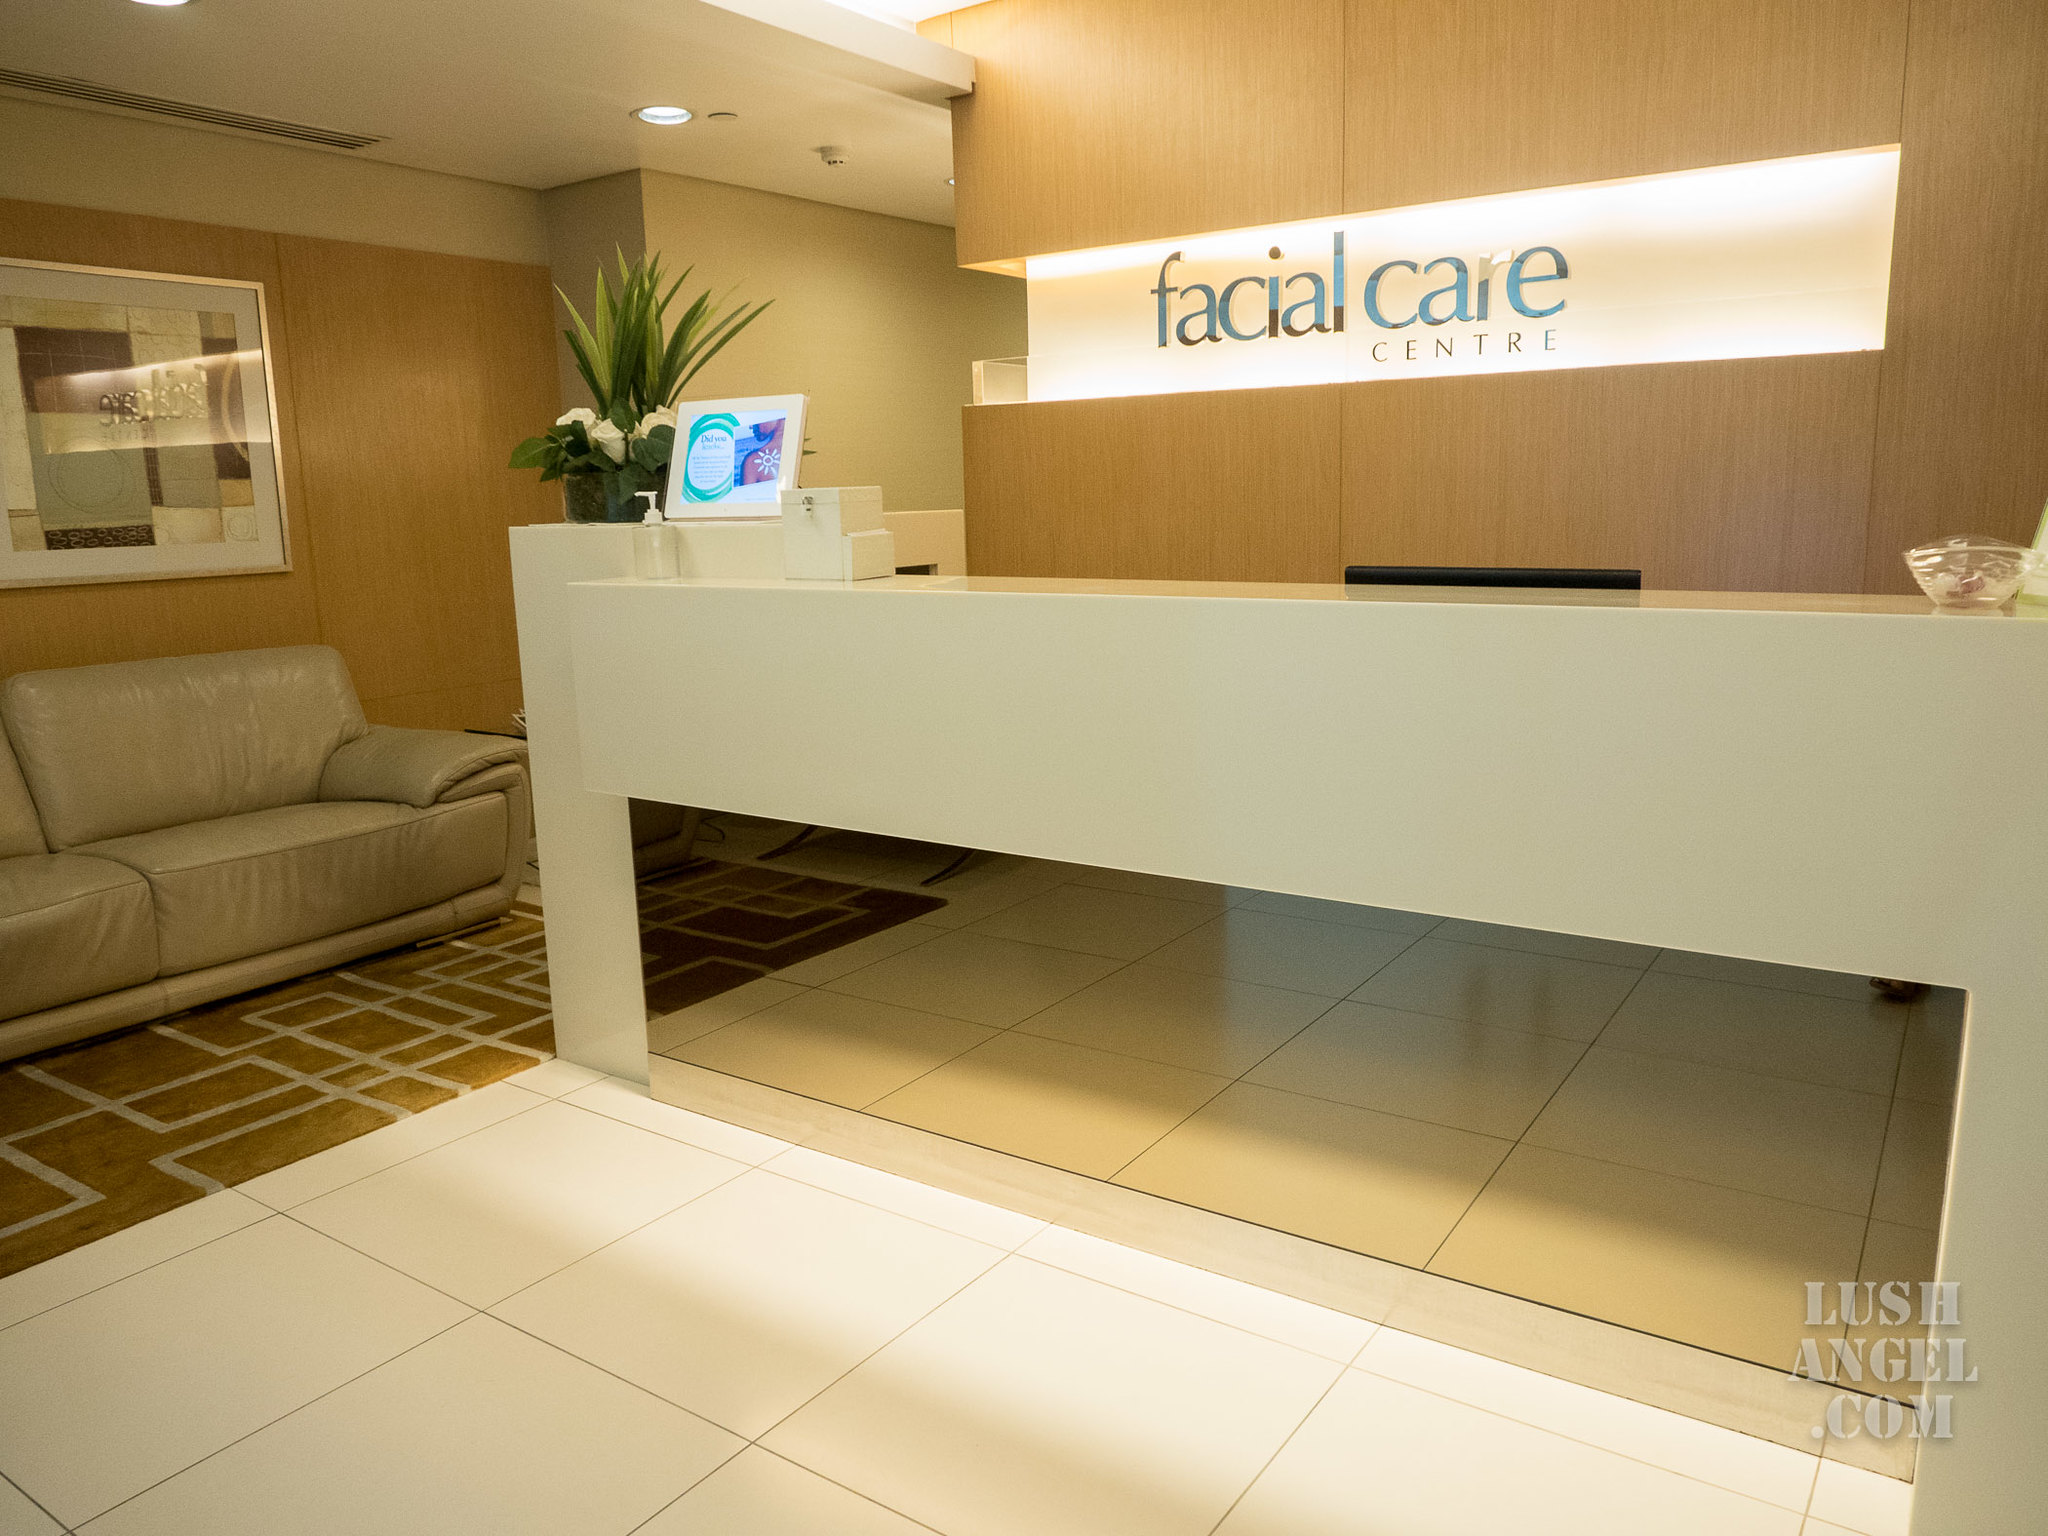 facial-care-center-philippines